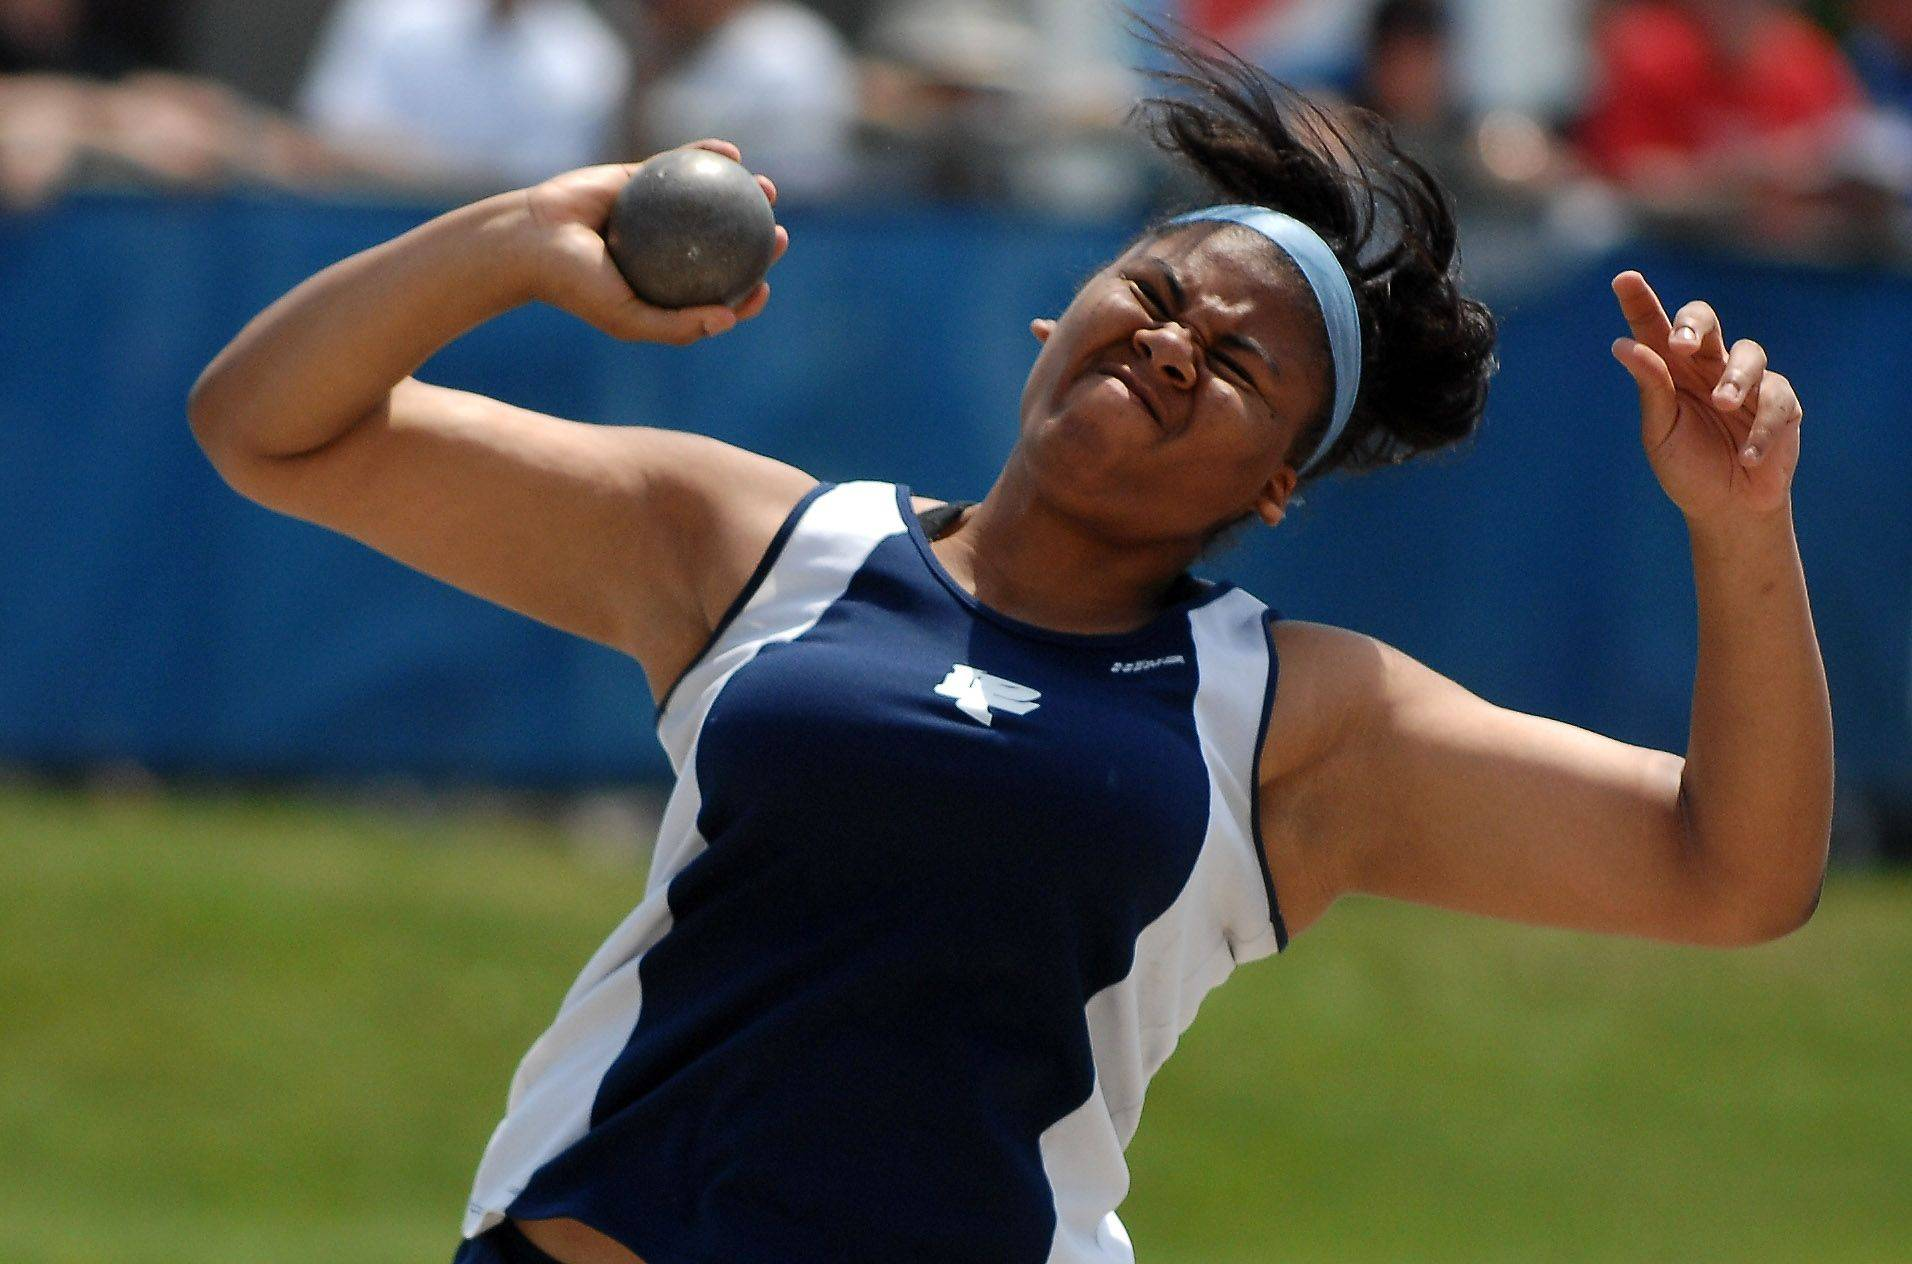 Lake Park's Shayna Clark puts the shot during Friday's preliminaries in Charleston.